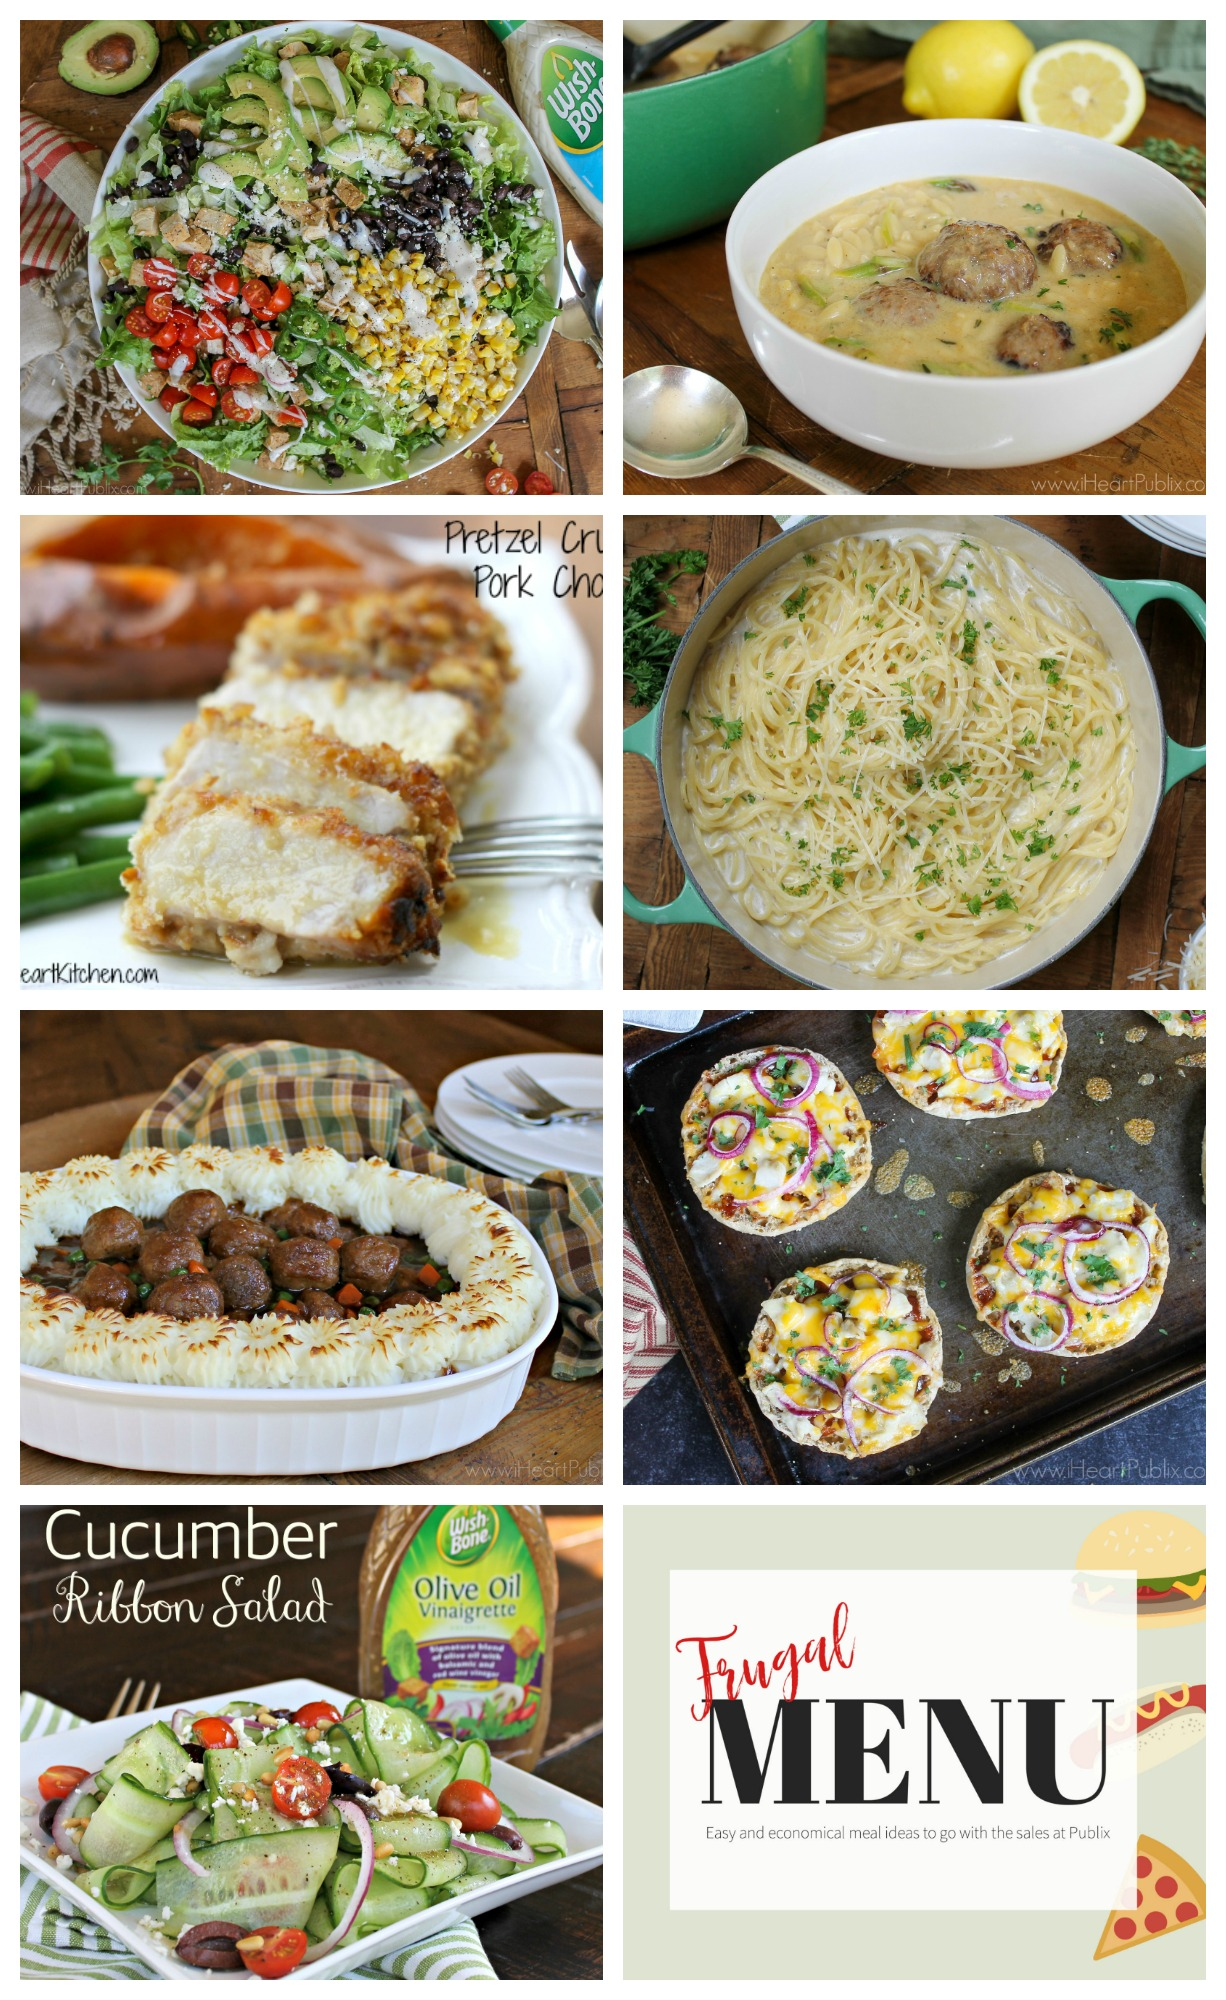 Frugal Family Menu For The Publix Sales Starting 7/2 – Seven Meals That Won't Break Your Budget on I Heart Publix 1